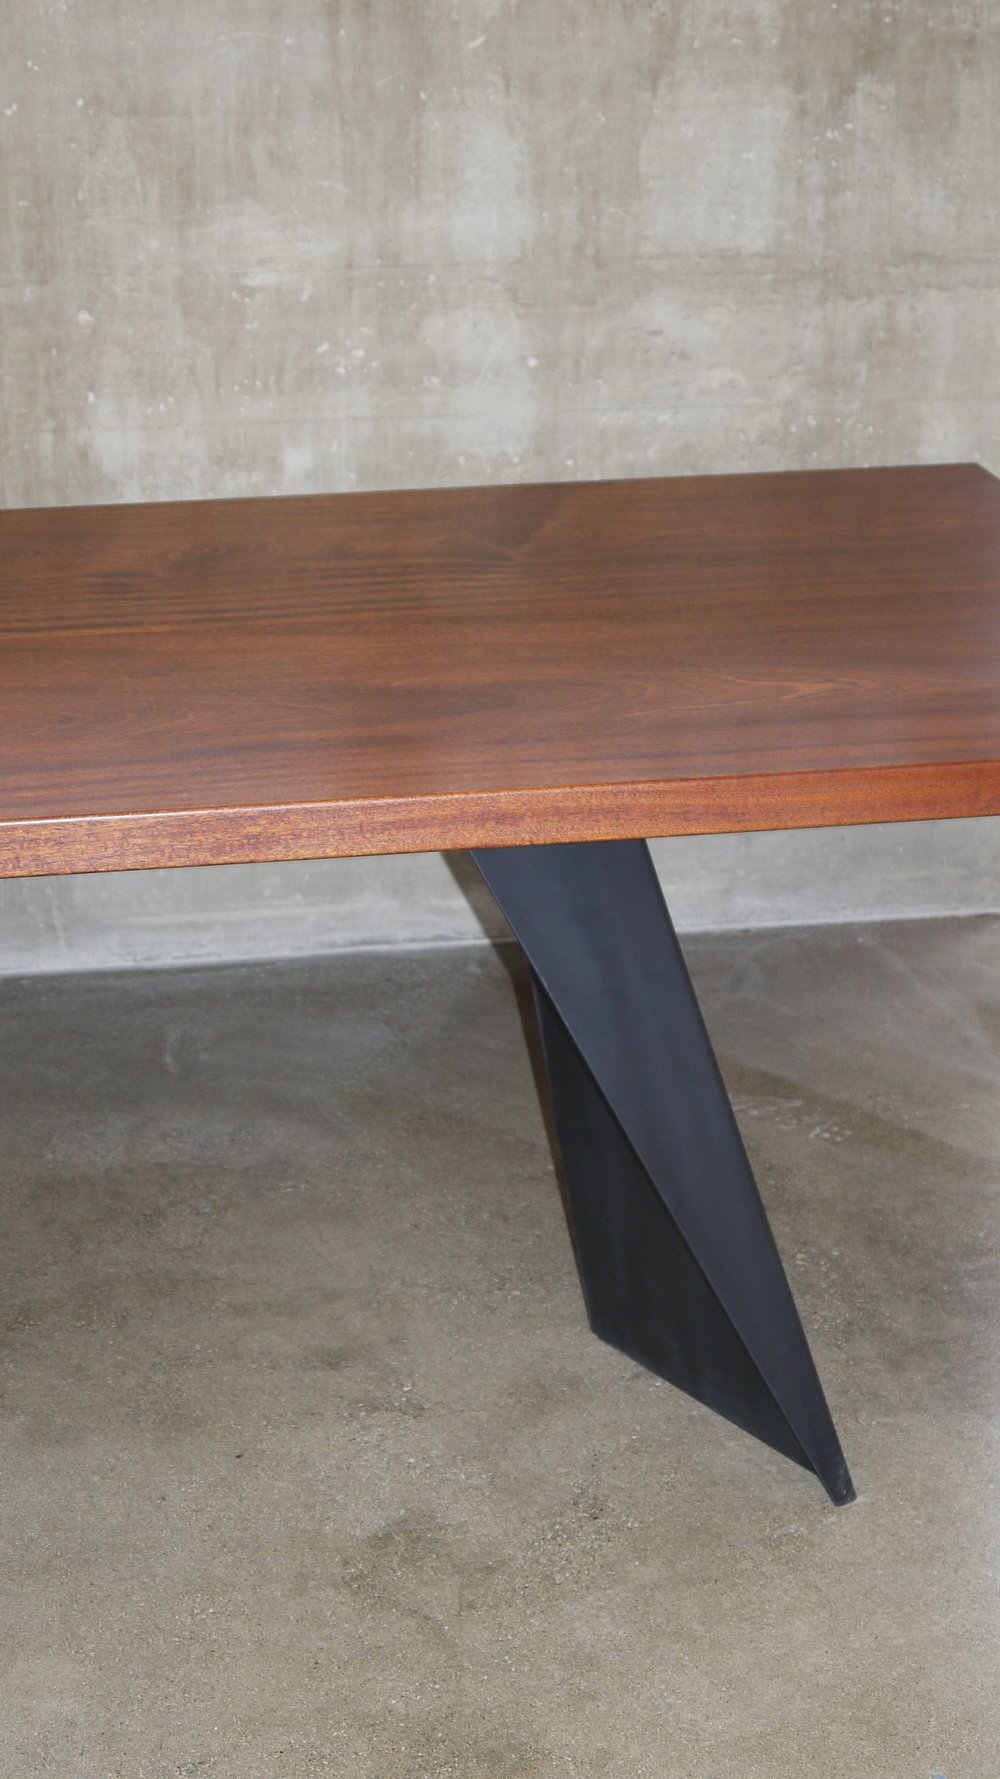 Livingston_Street_Residence_Furniture_Table_Leg_Detail.JPG